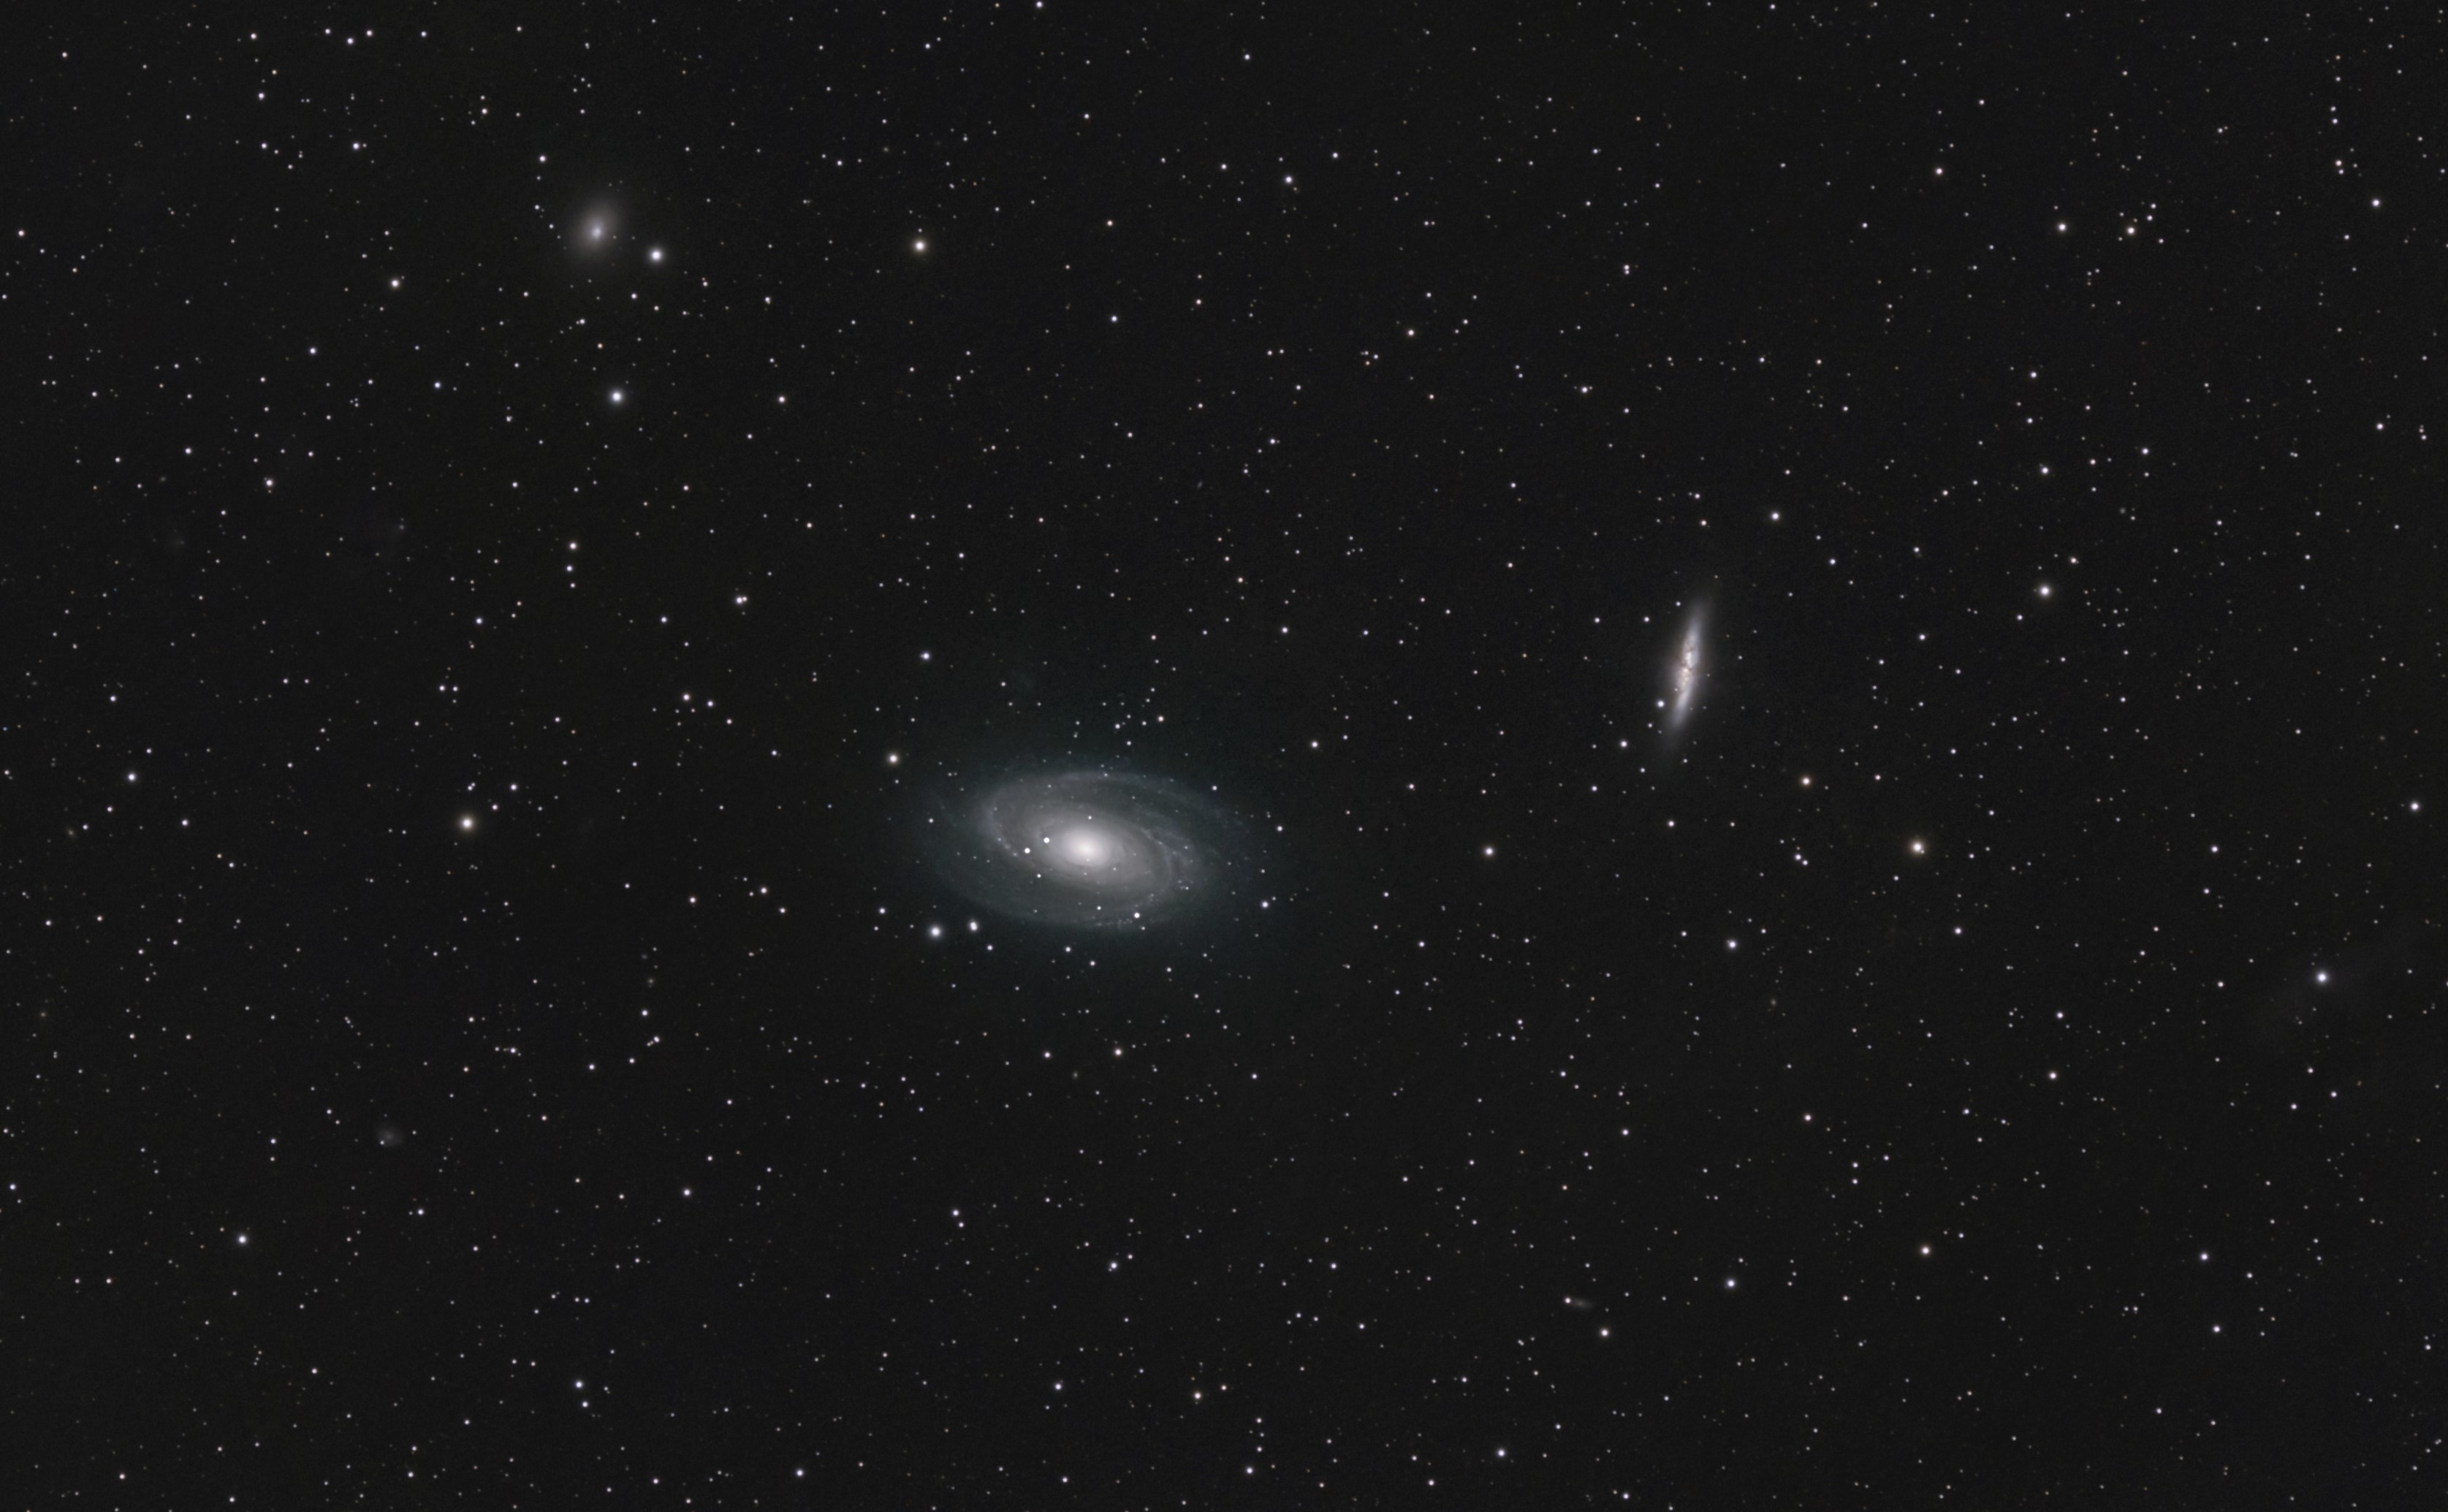 An image of Bode's Galaxy (left), the Cigar Galaxy (right) and the Garland Galaxy (top left).